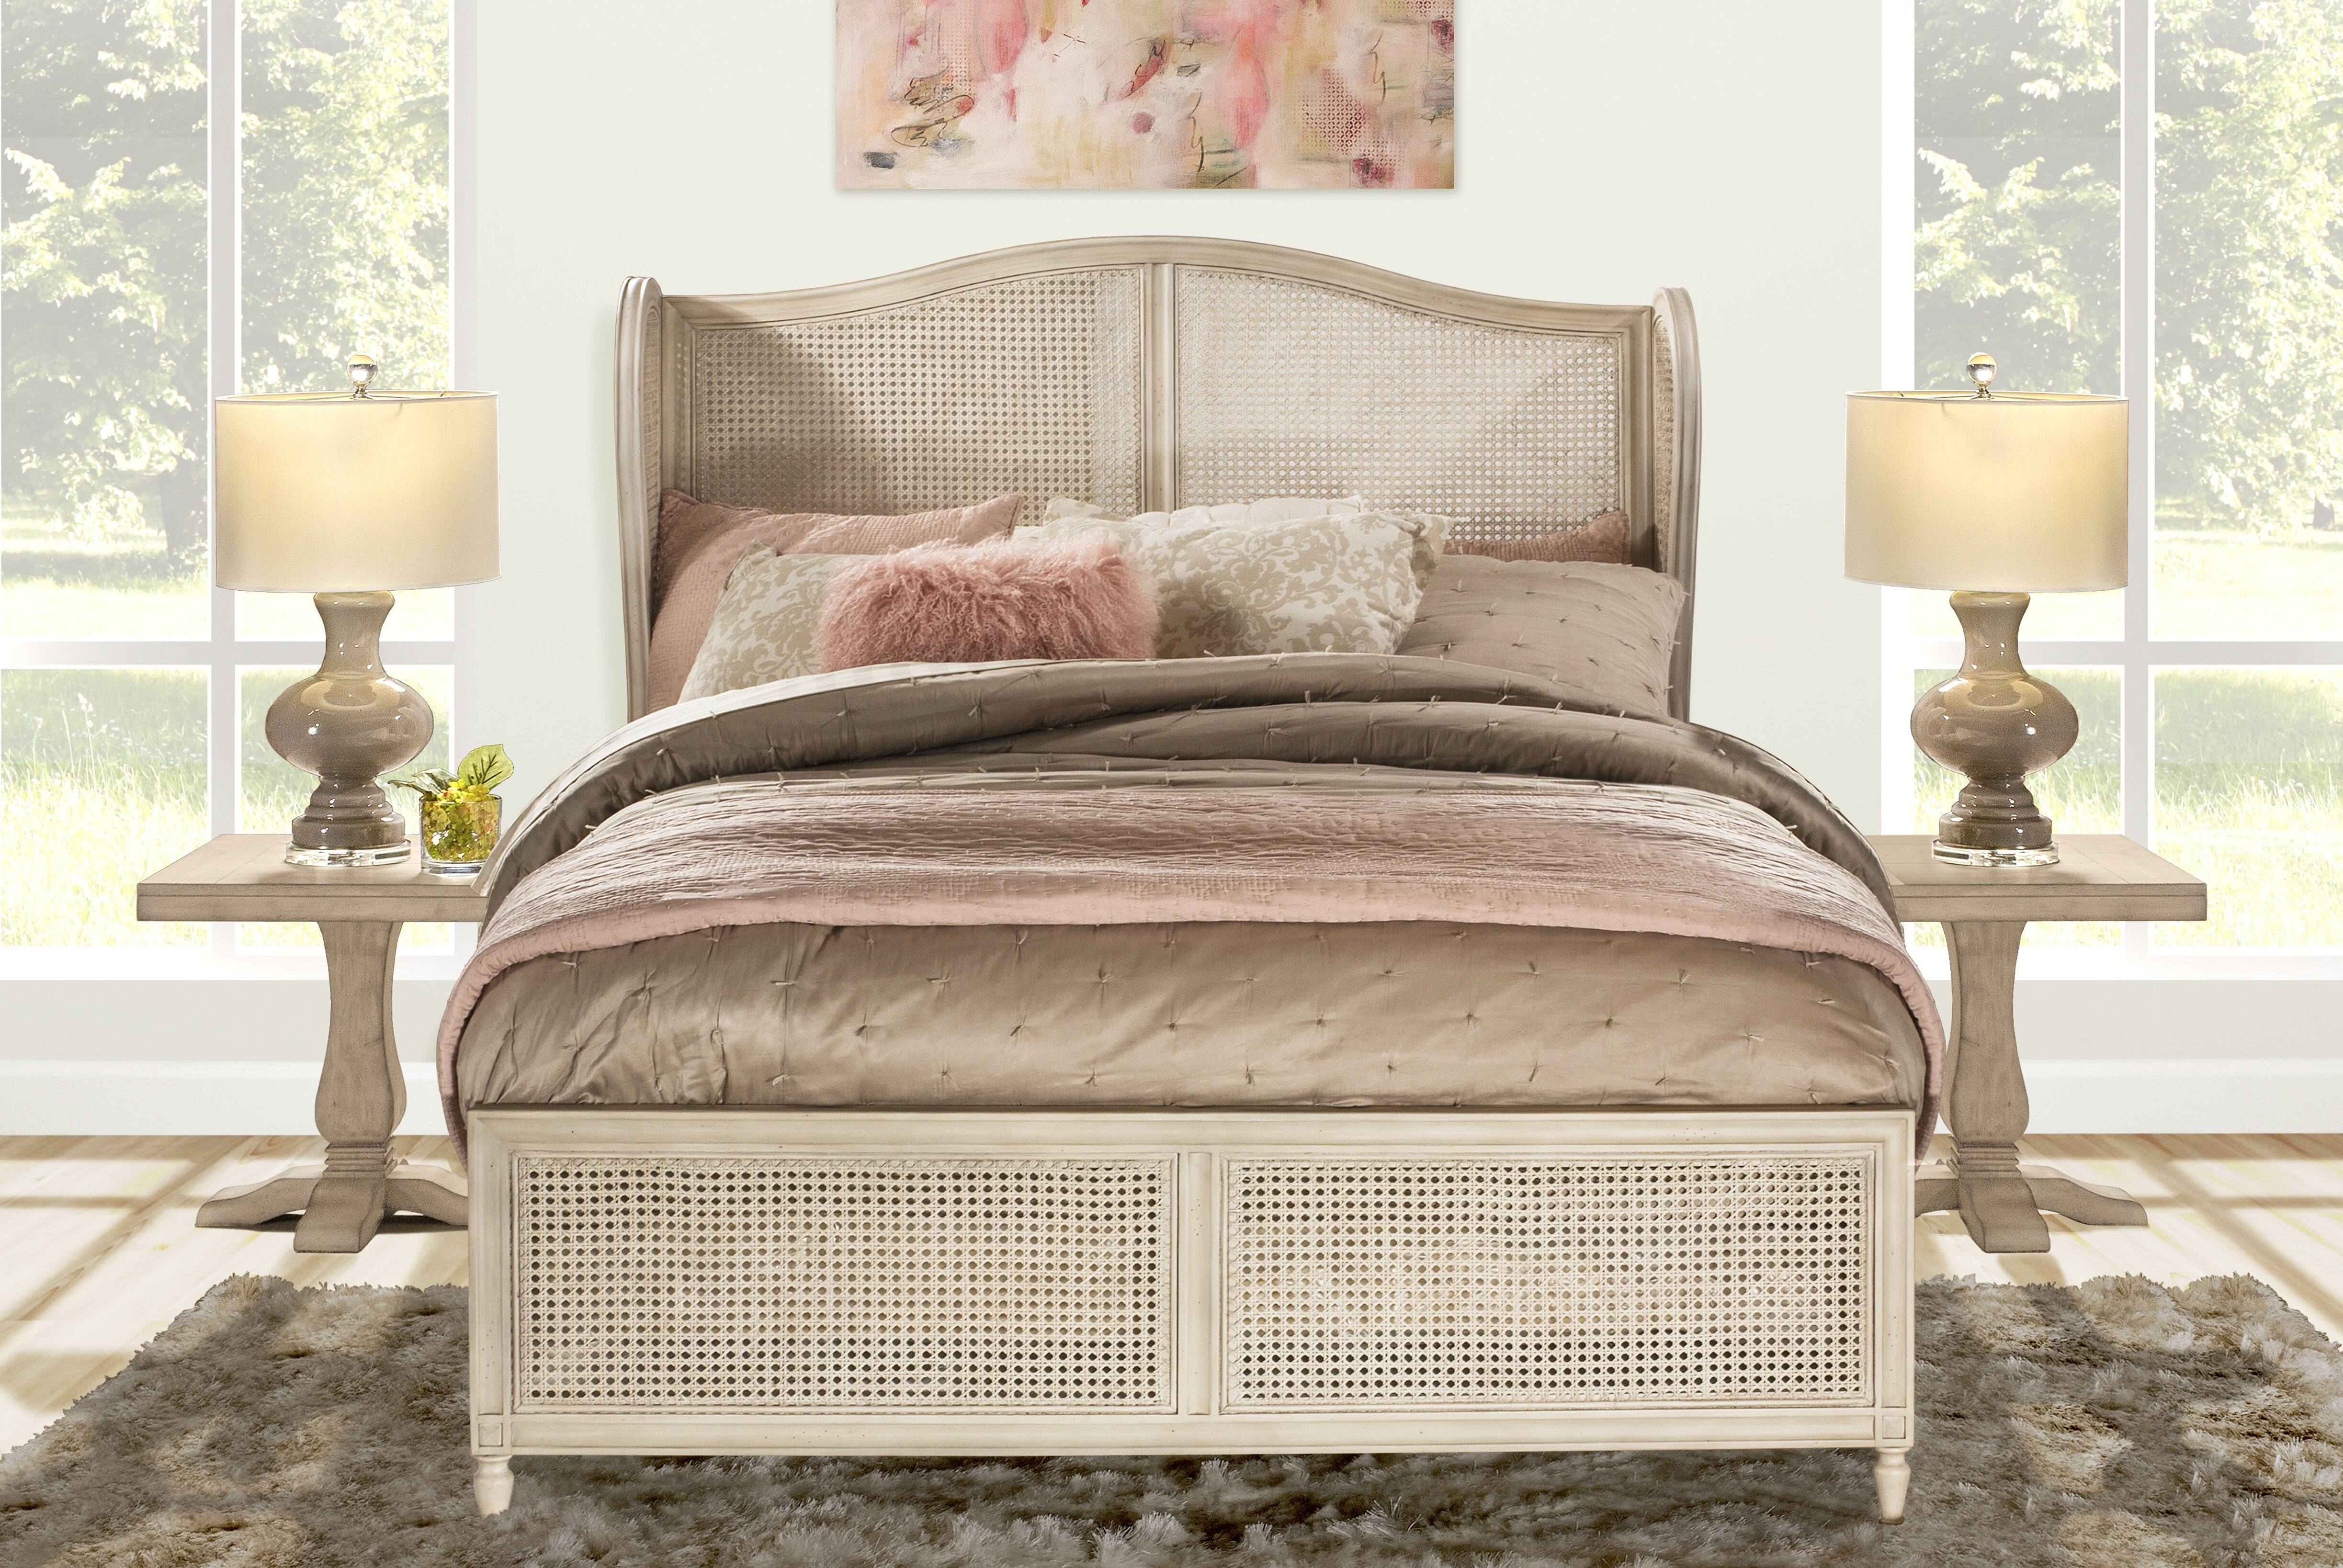 Dominique French Country Youth Bedroom Full Bed Curved Molding Headboard White Home Garden Kids Teens Home Items